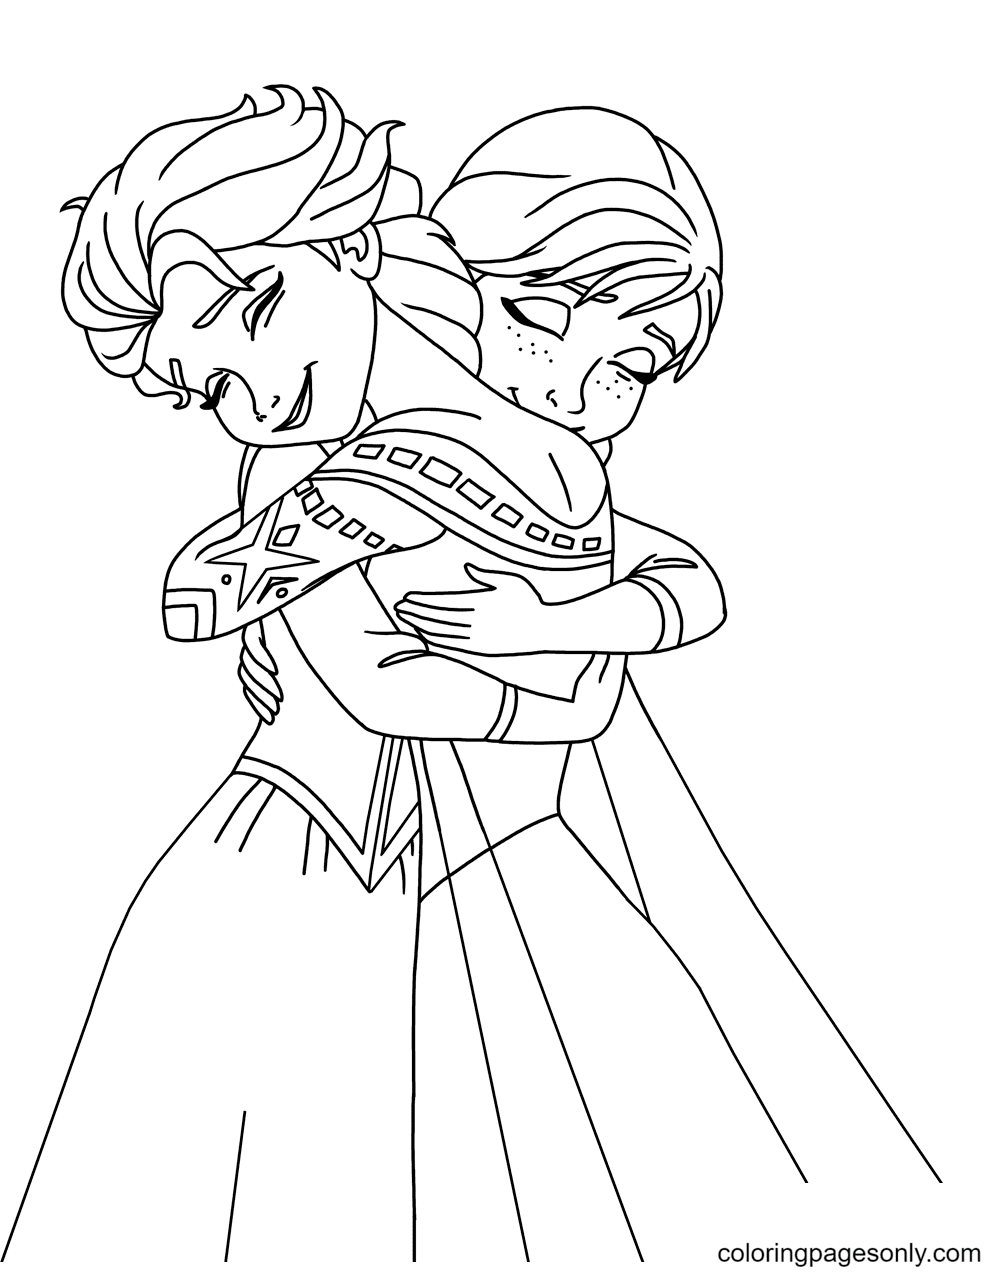 Sisters Elsa and Anna Hug Each Other Coloring Page